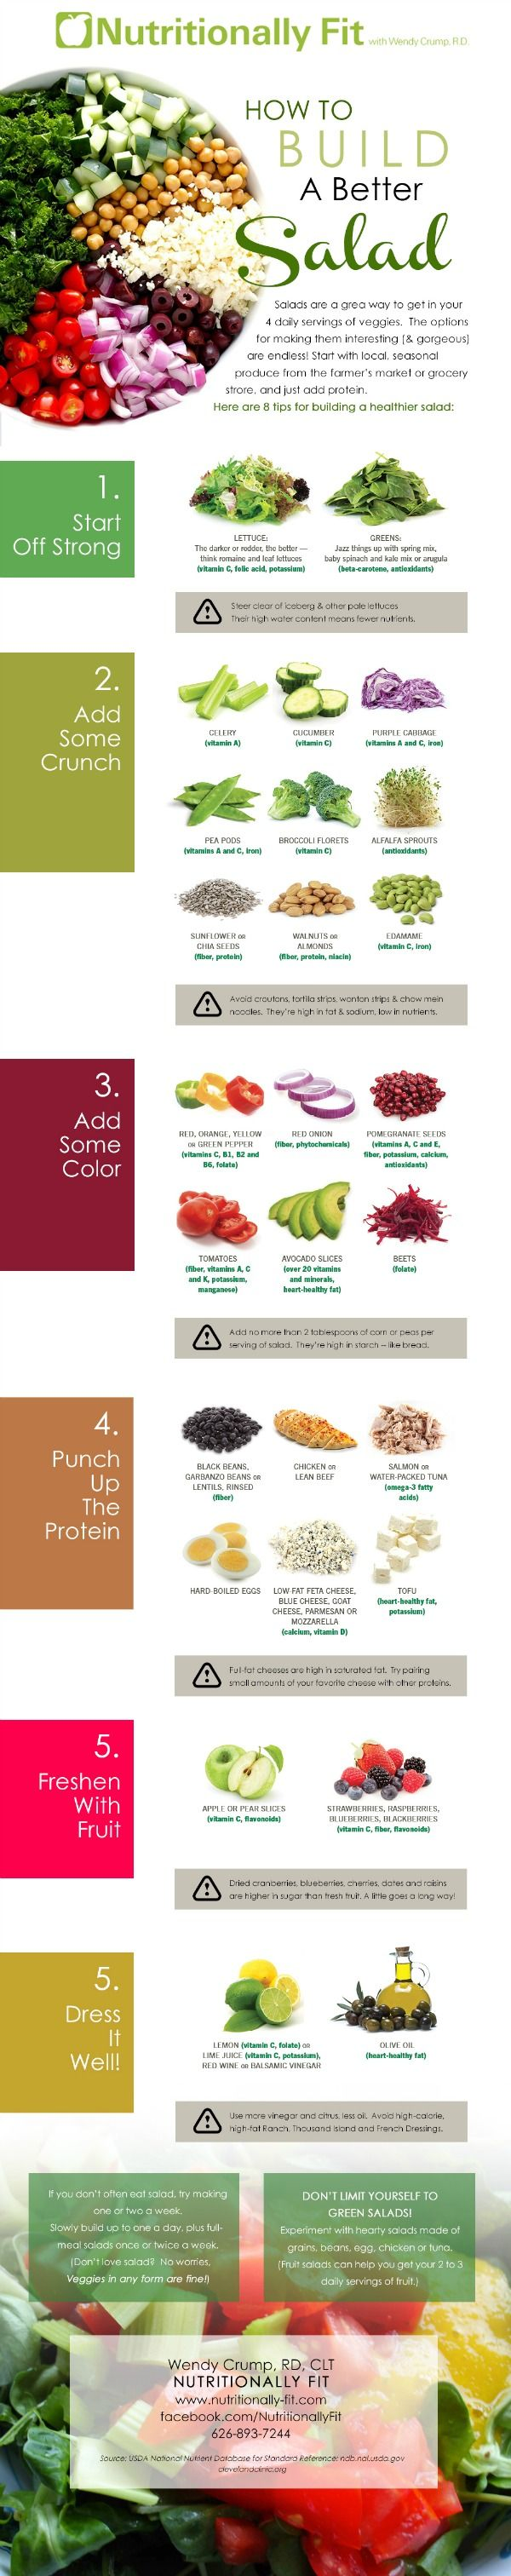 How to build a better salad infographic #nutrition #healthyeating http://www.erodethefat.com/blog/fat-diminisher/